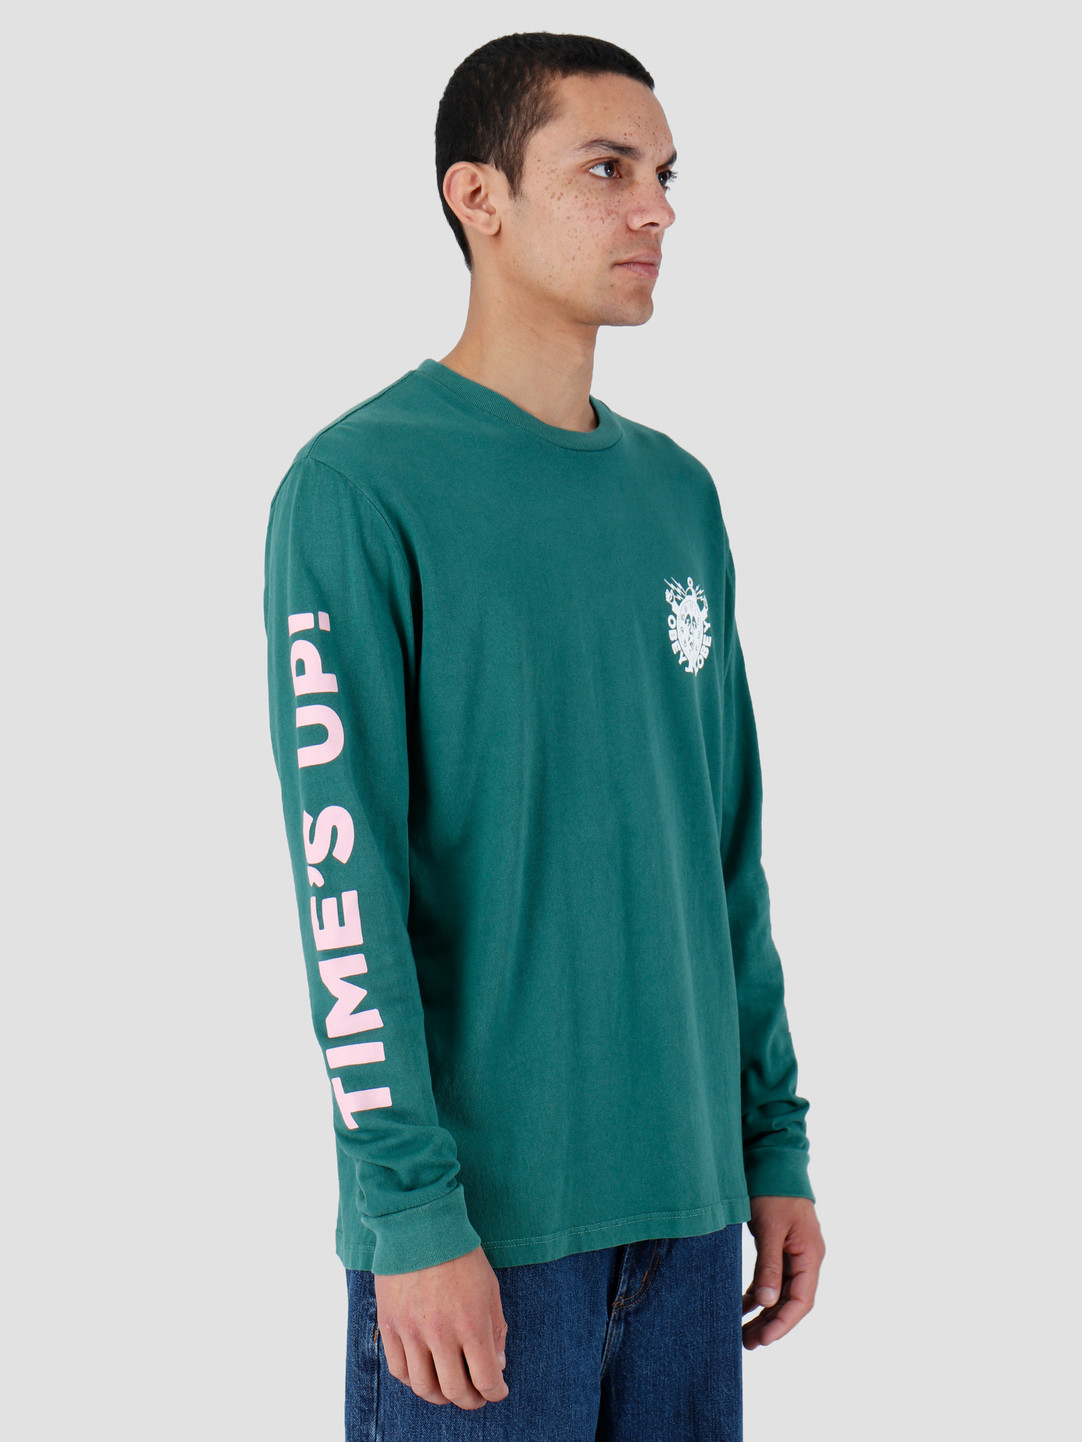 Obey Obey Time'S Up Pigment Longsleeve Dusty Ivy Green 166731974-IVY